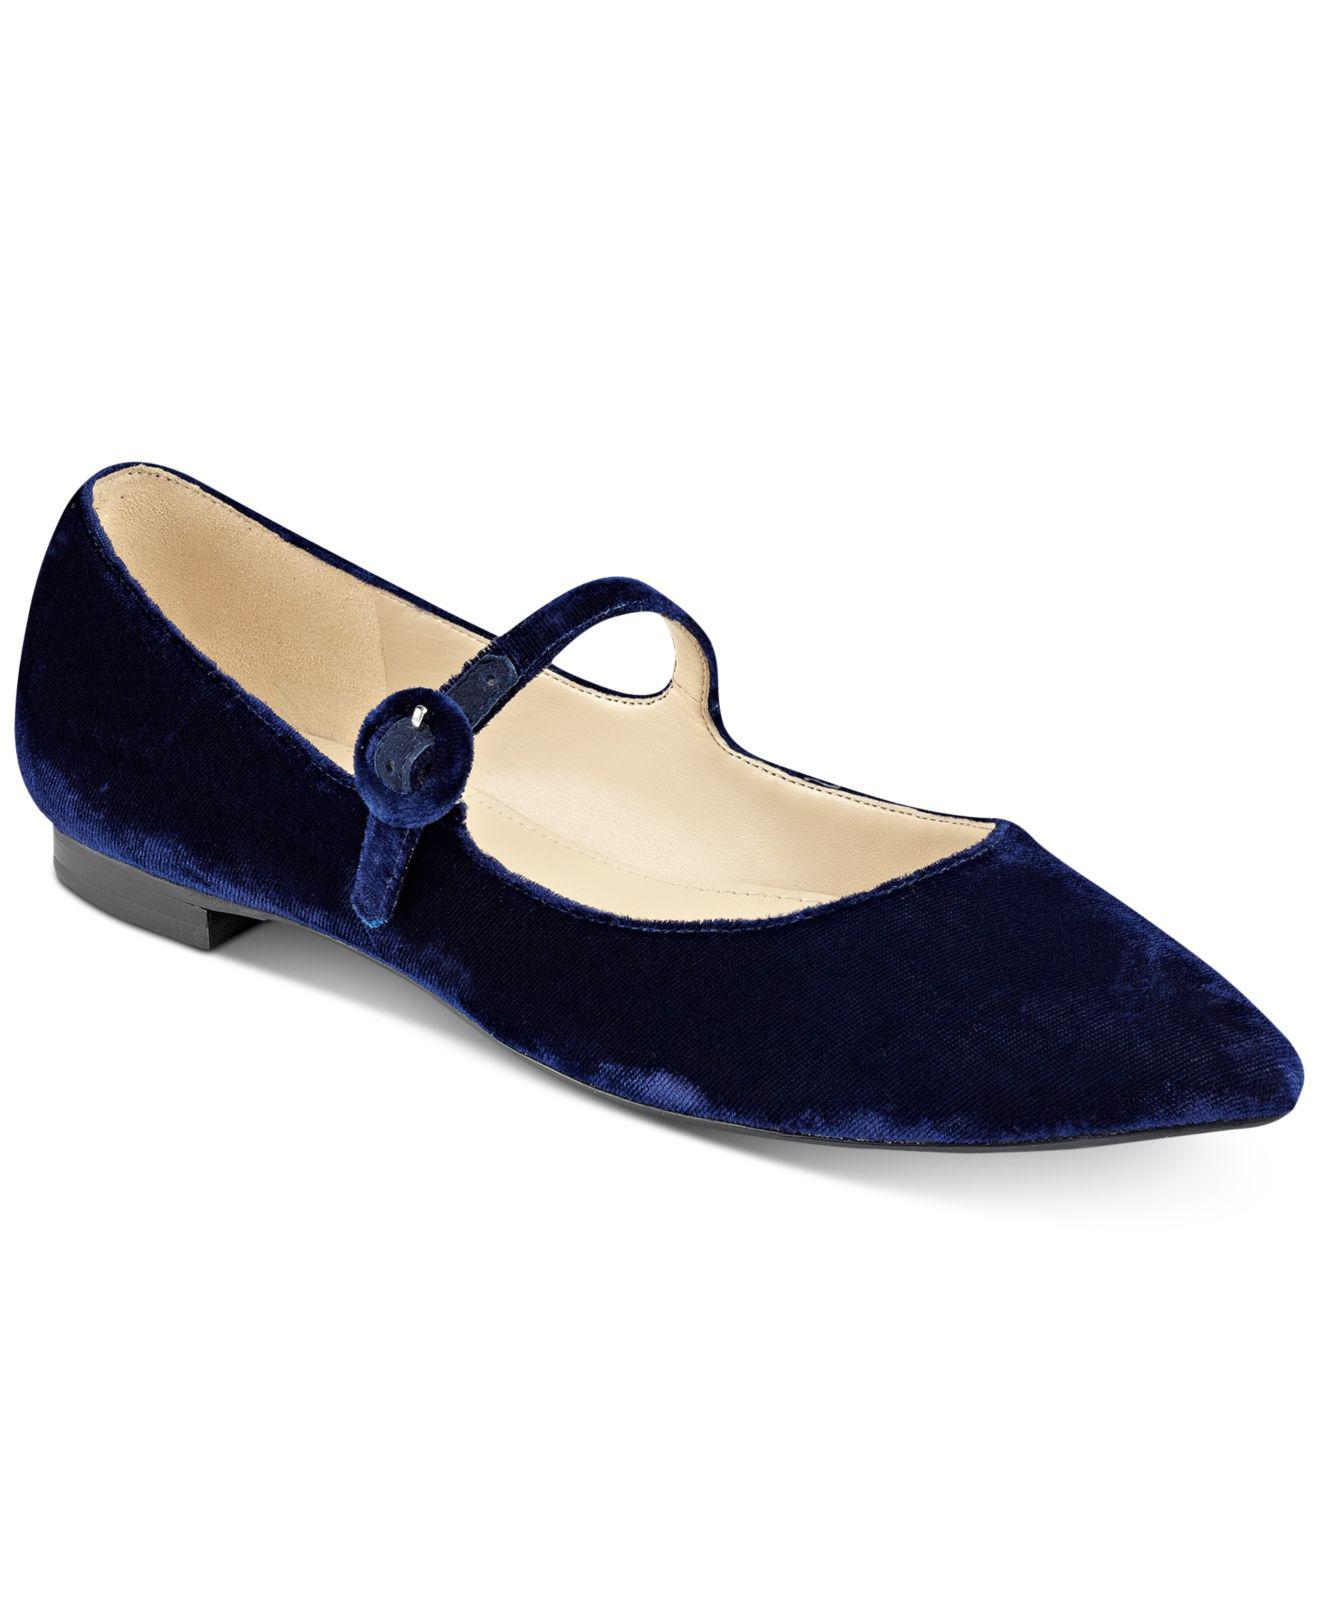 Naturalizer Pointed Toe Shoes